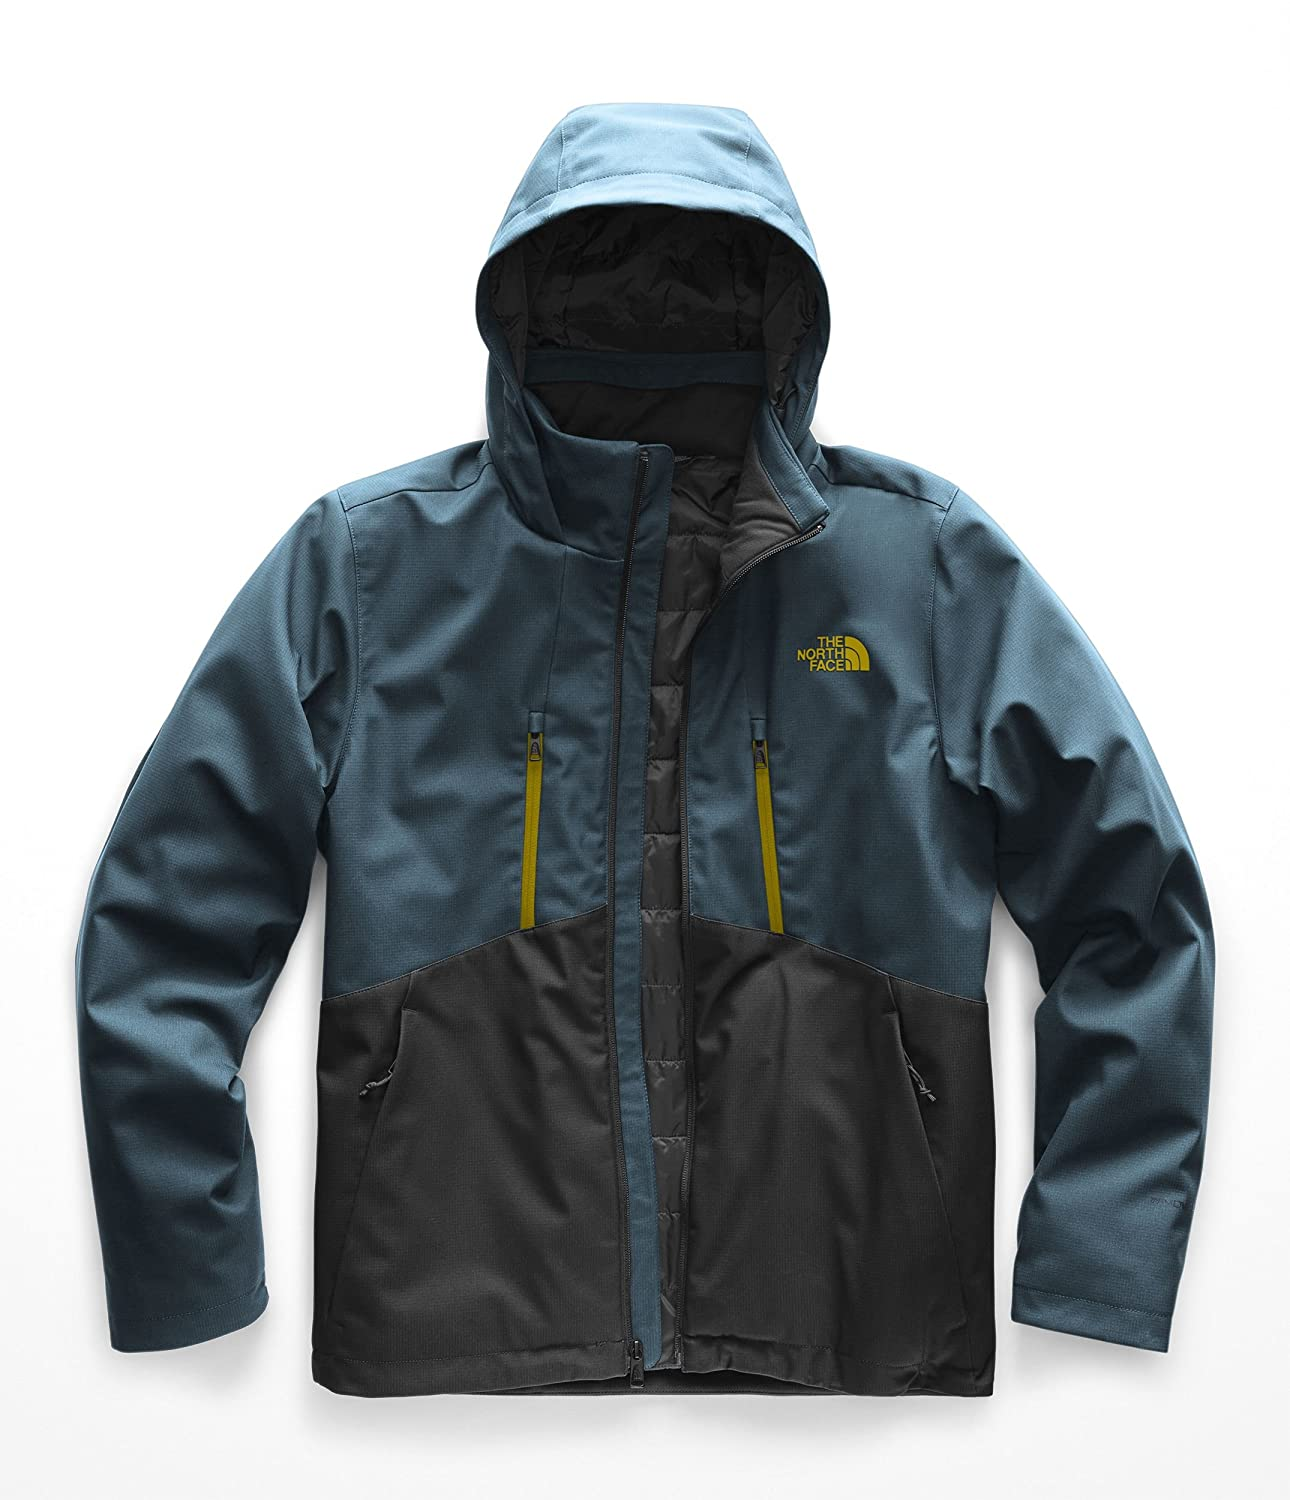 8b089a457 where to buy the north face recco system prices 02902 2d9e0